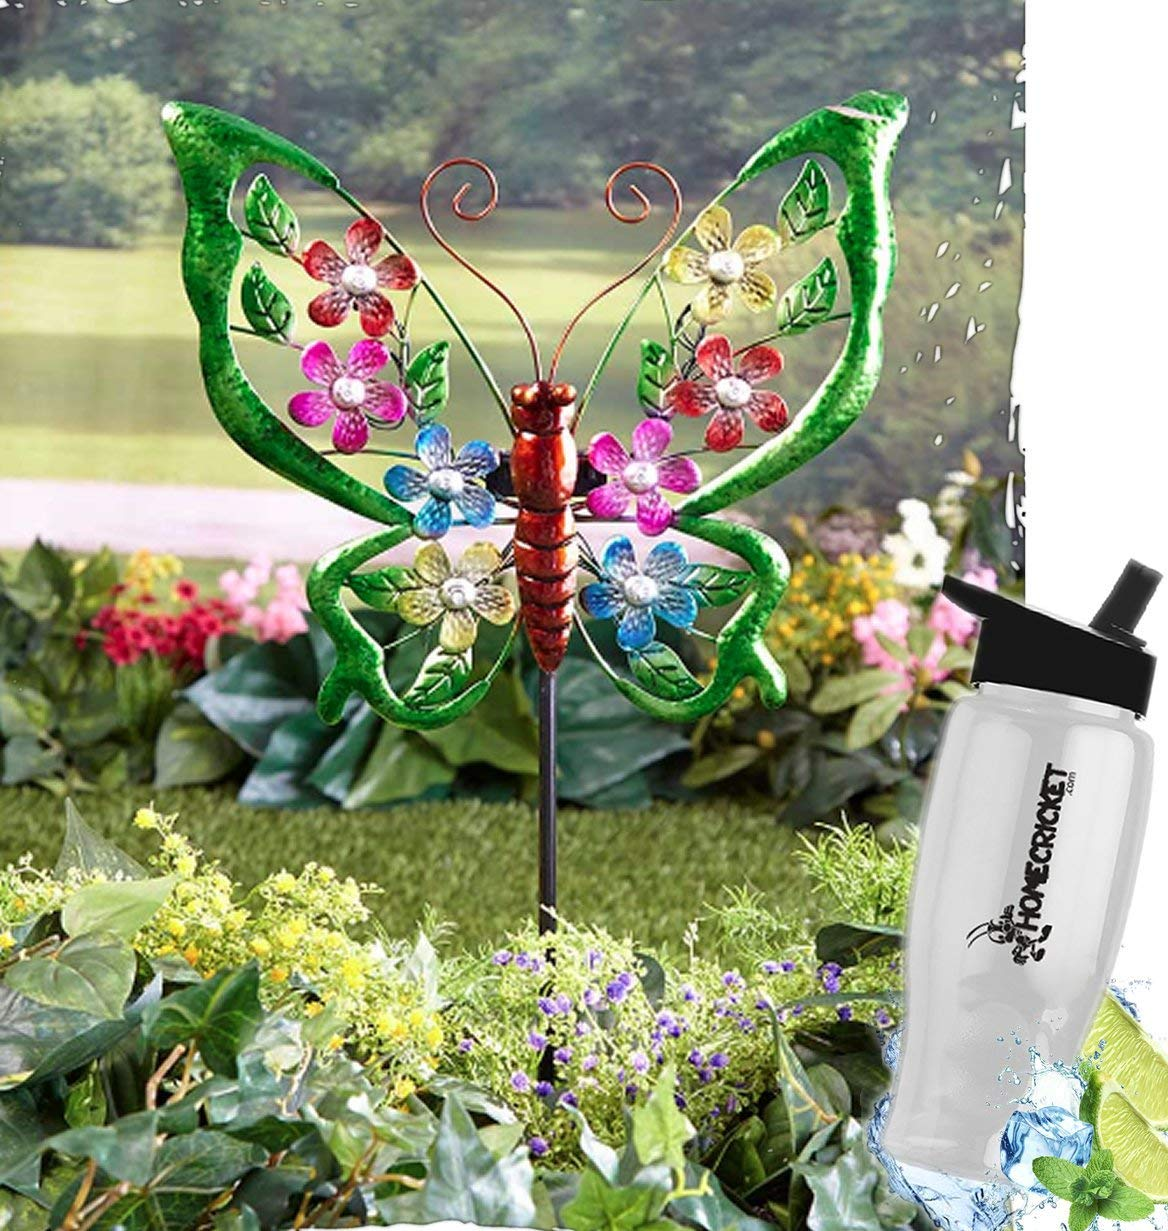 HomeCricket Gift Included- Solar Powered Lights Multicolored Garden Yard Ground Stake Decor Butterfly + FREE Bonus Water Bottle by